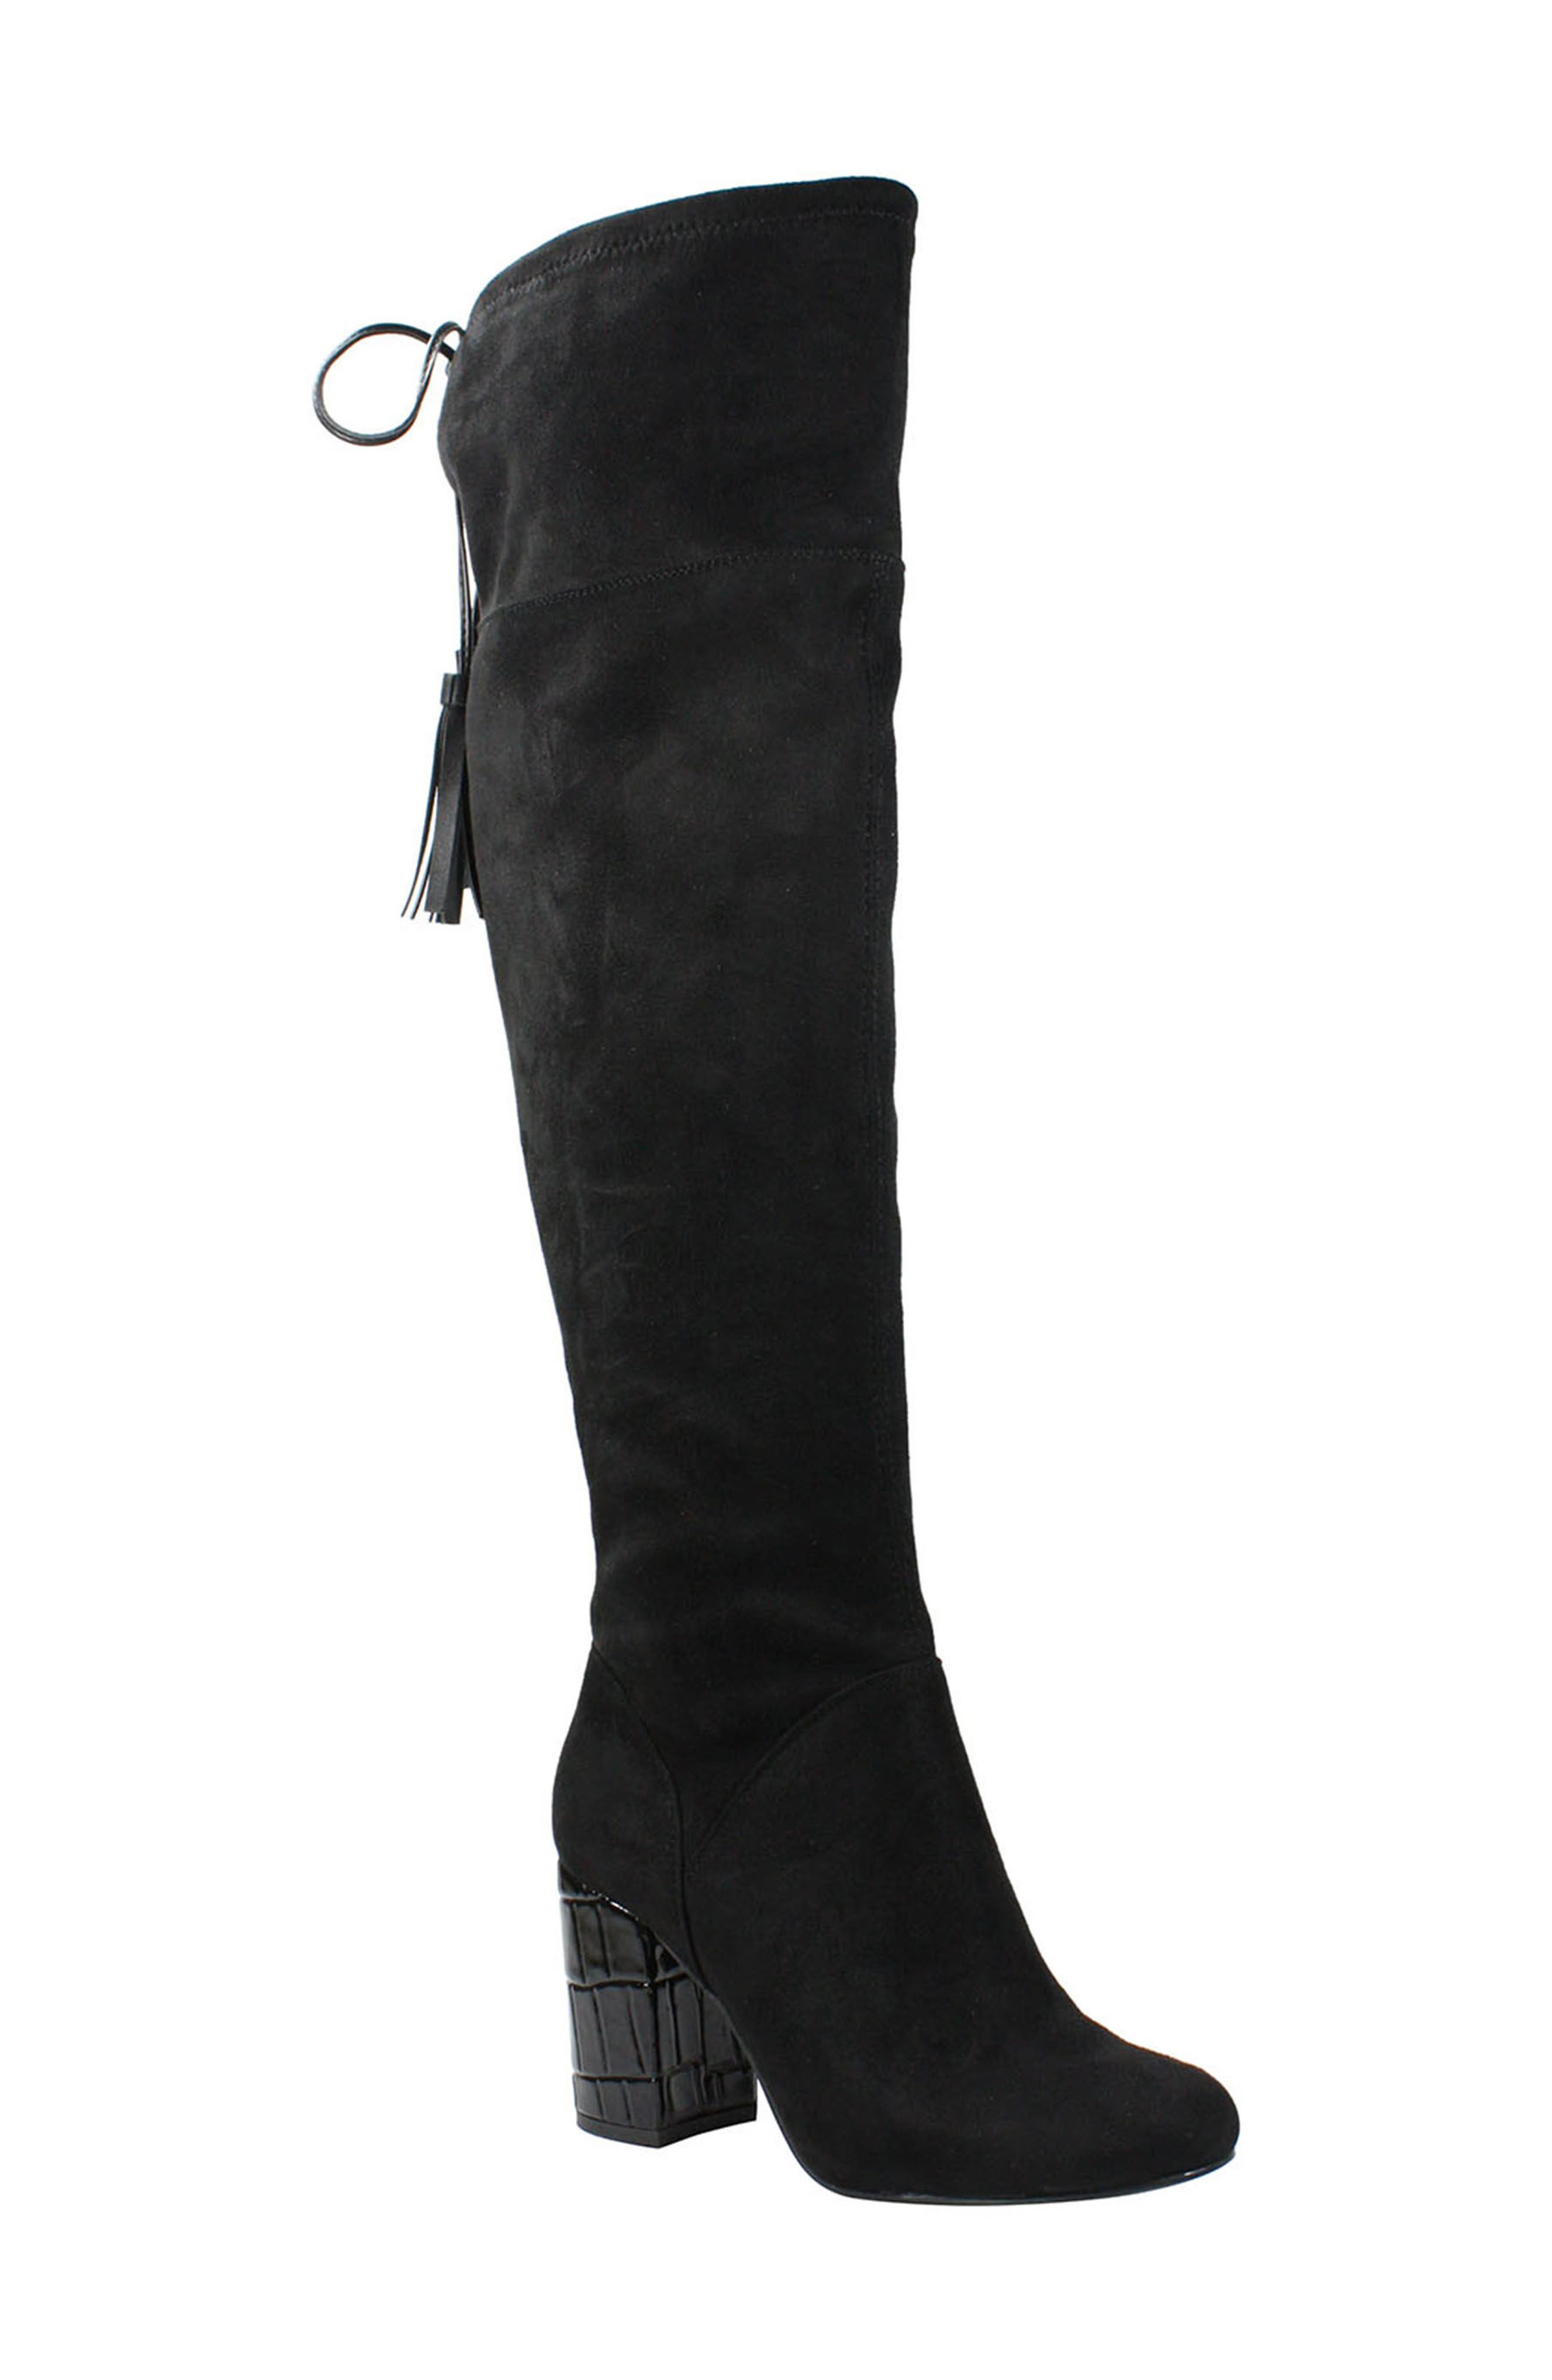 Calcari Over the Knee Boot,                             Main thumbnail 1, color,                             BLACK SUEDE